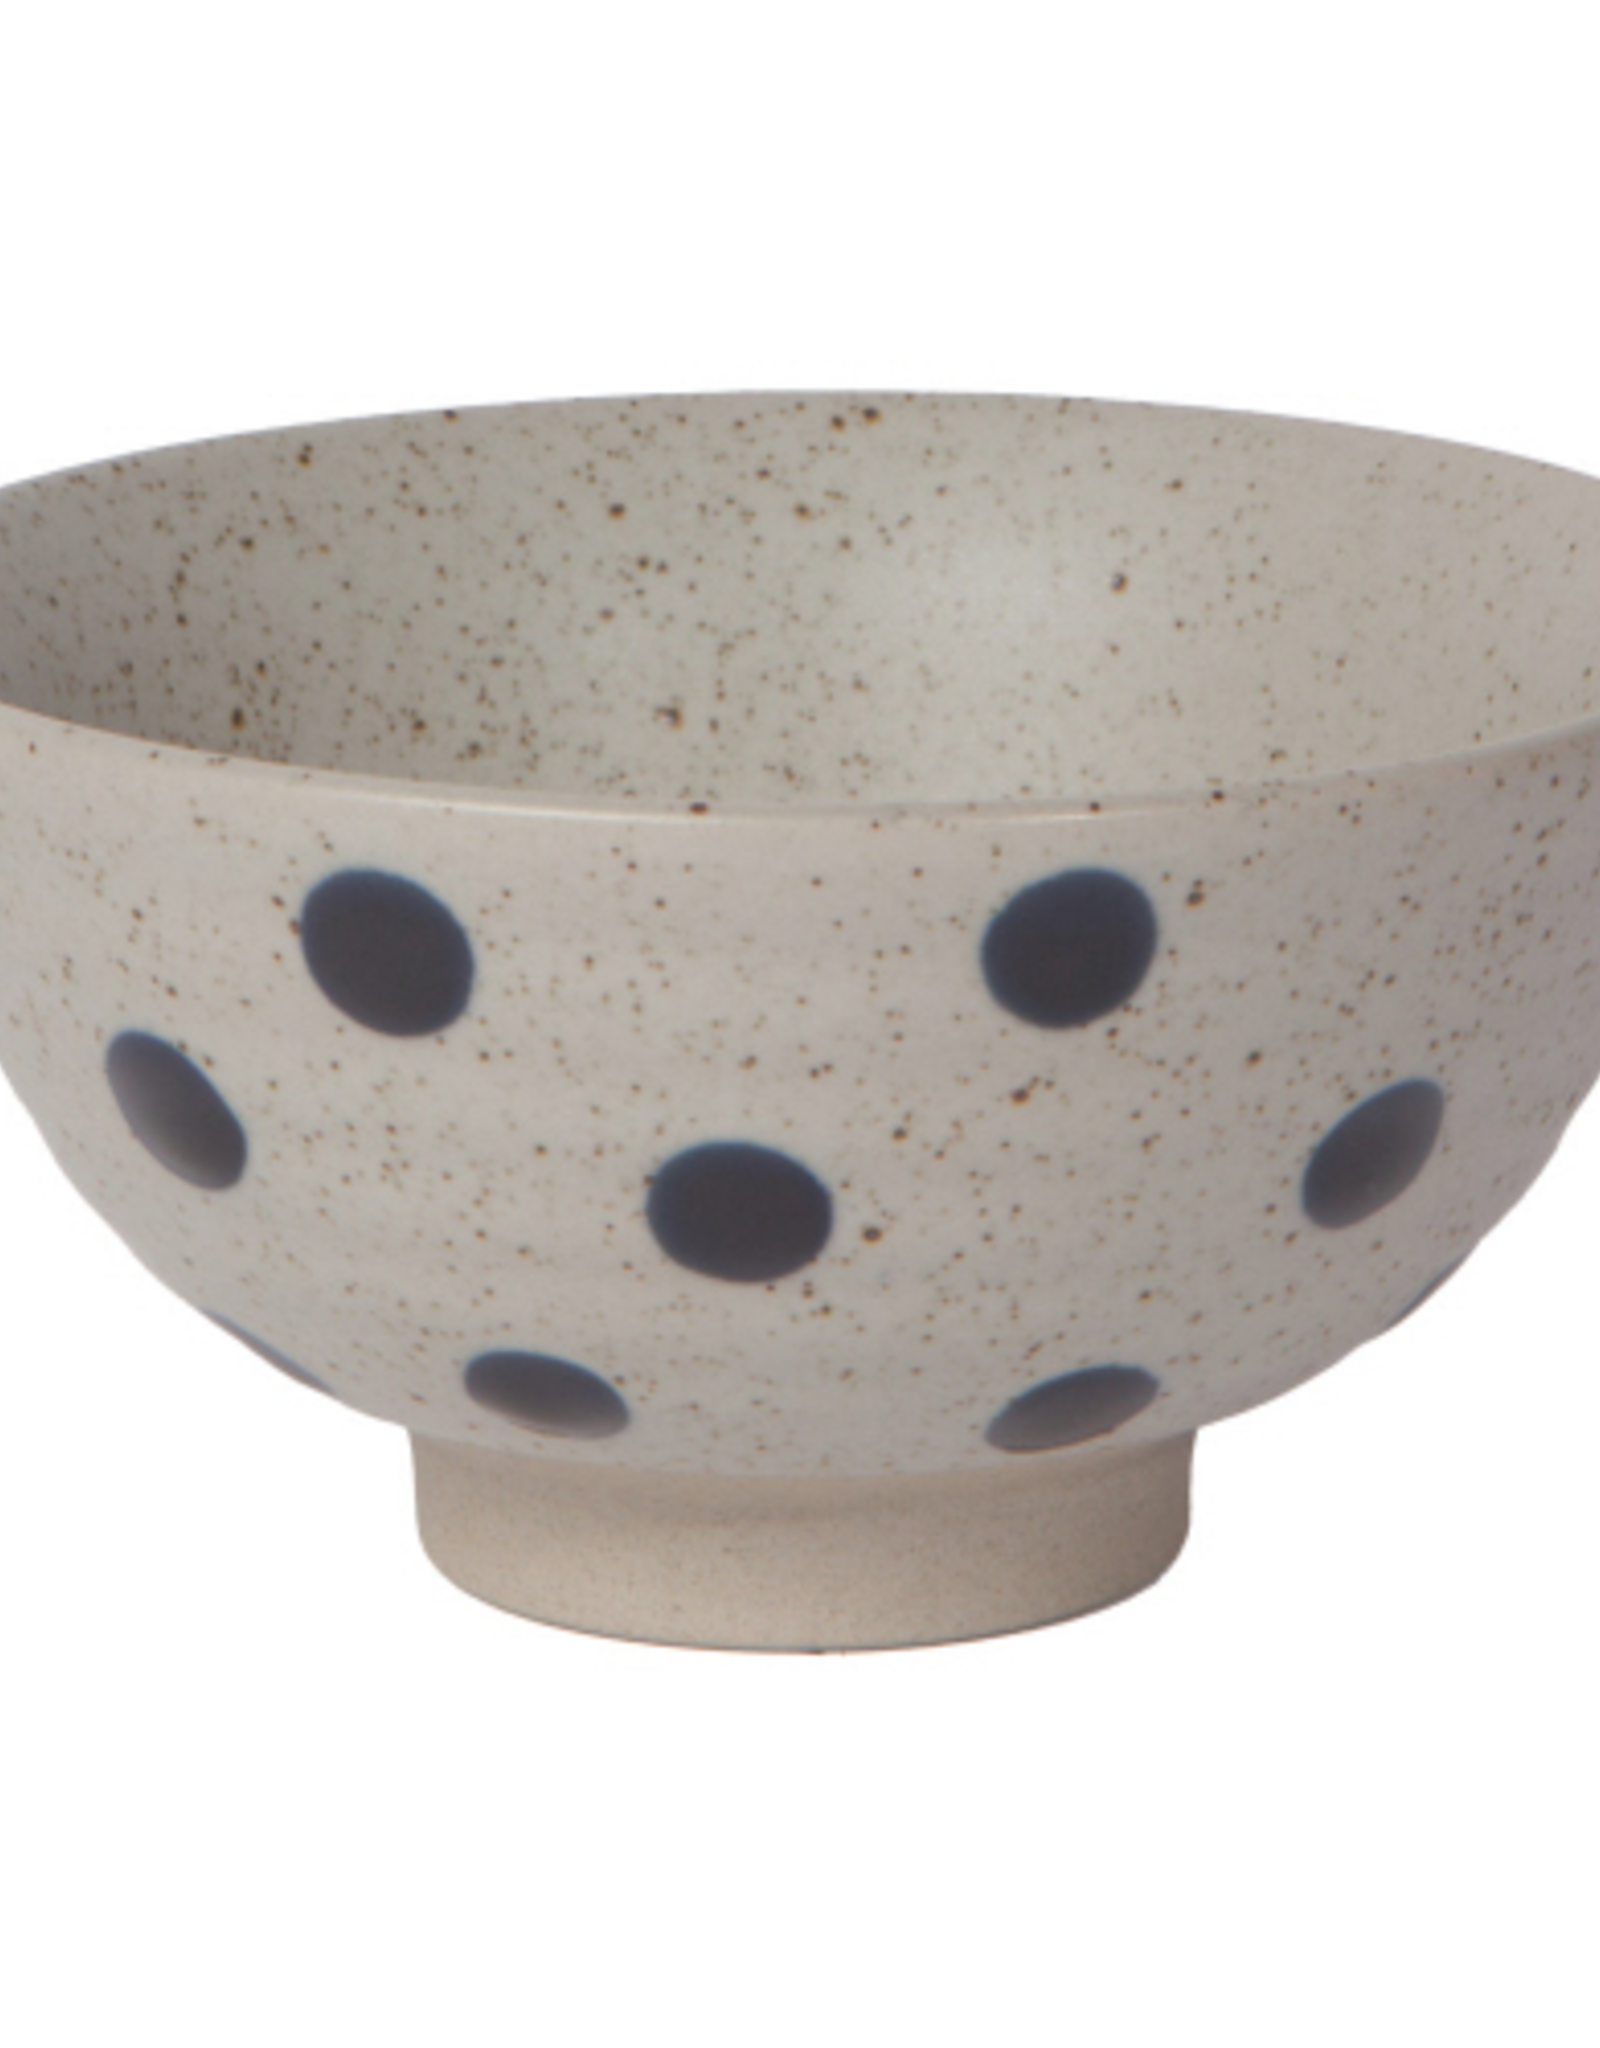 Danica Danica Element Bowl-Large-Audrey